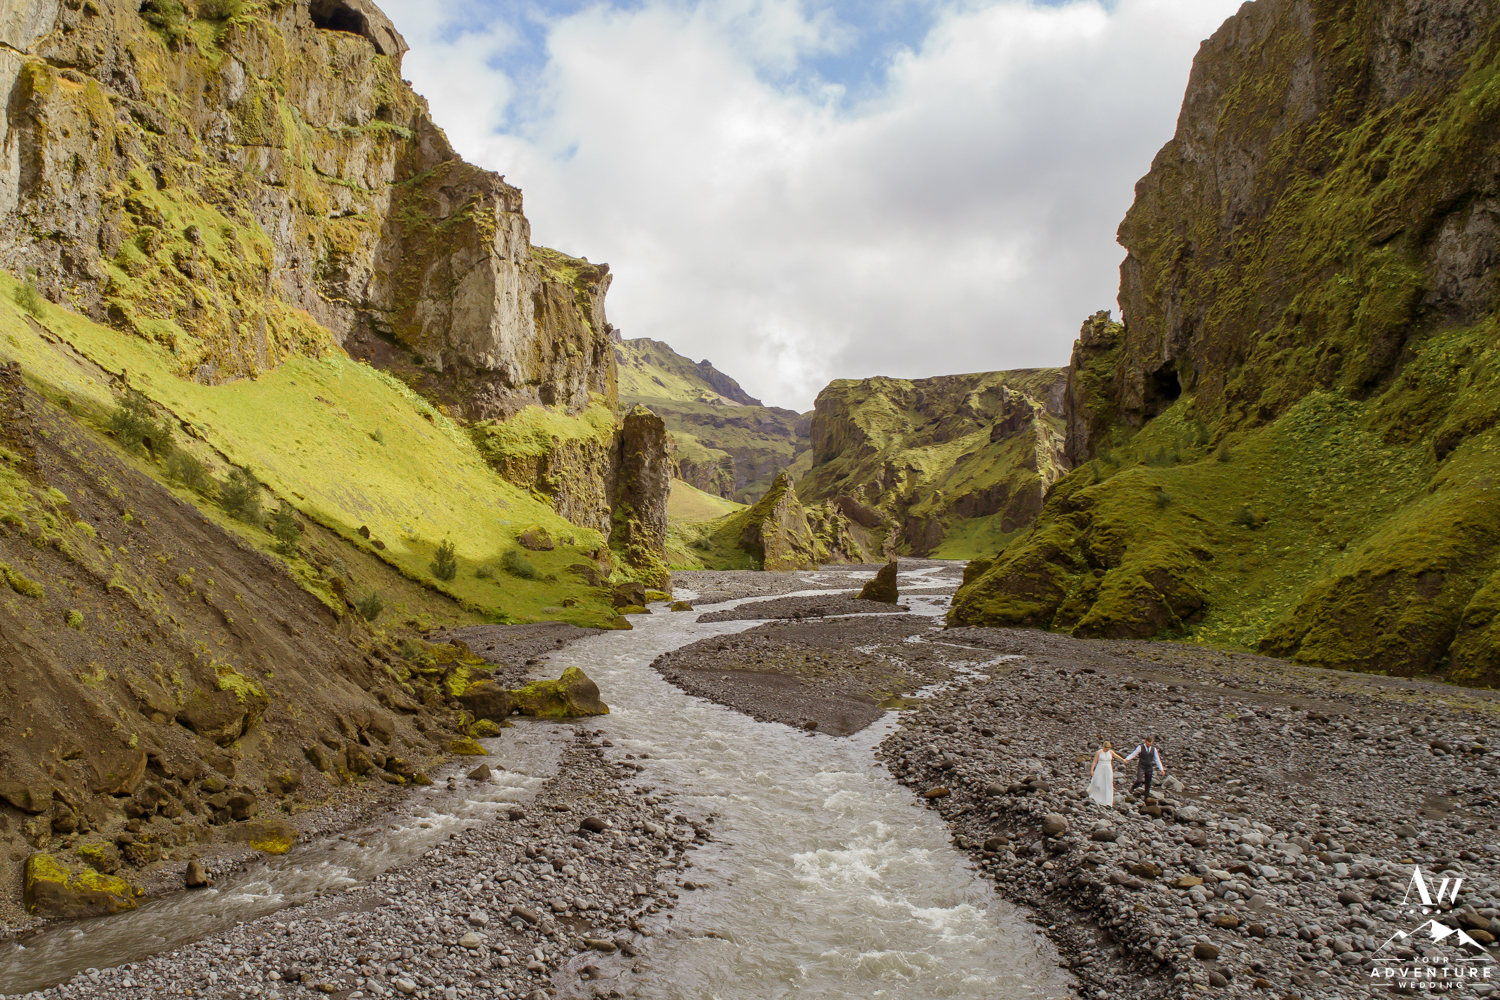 Hiking Elopement in a Canyon in Iceland